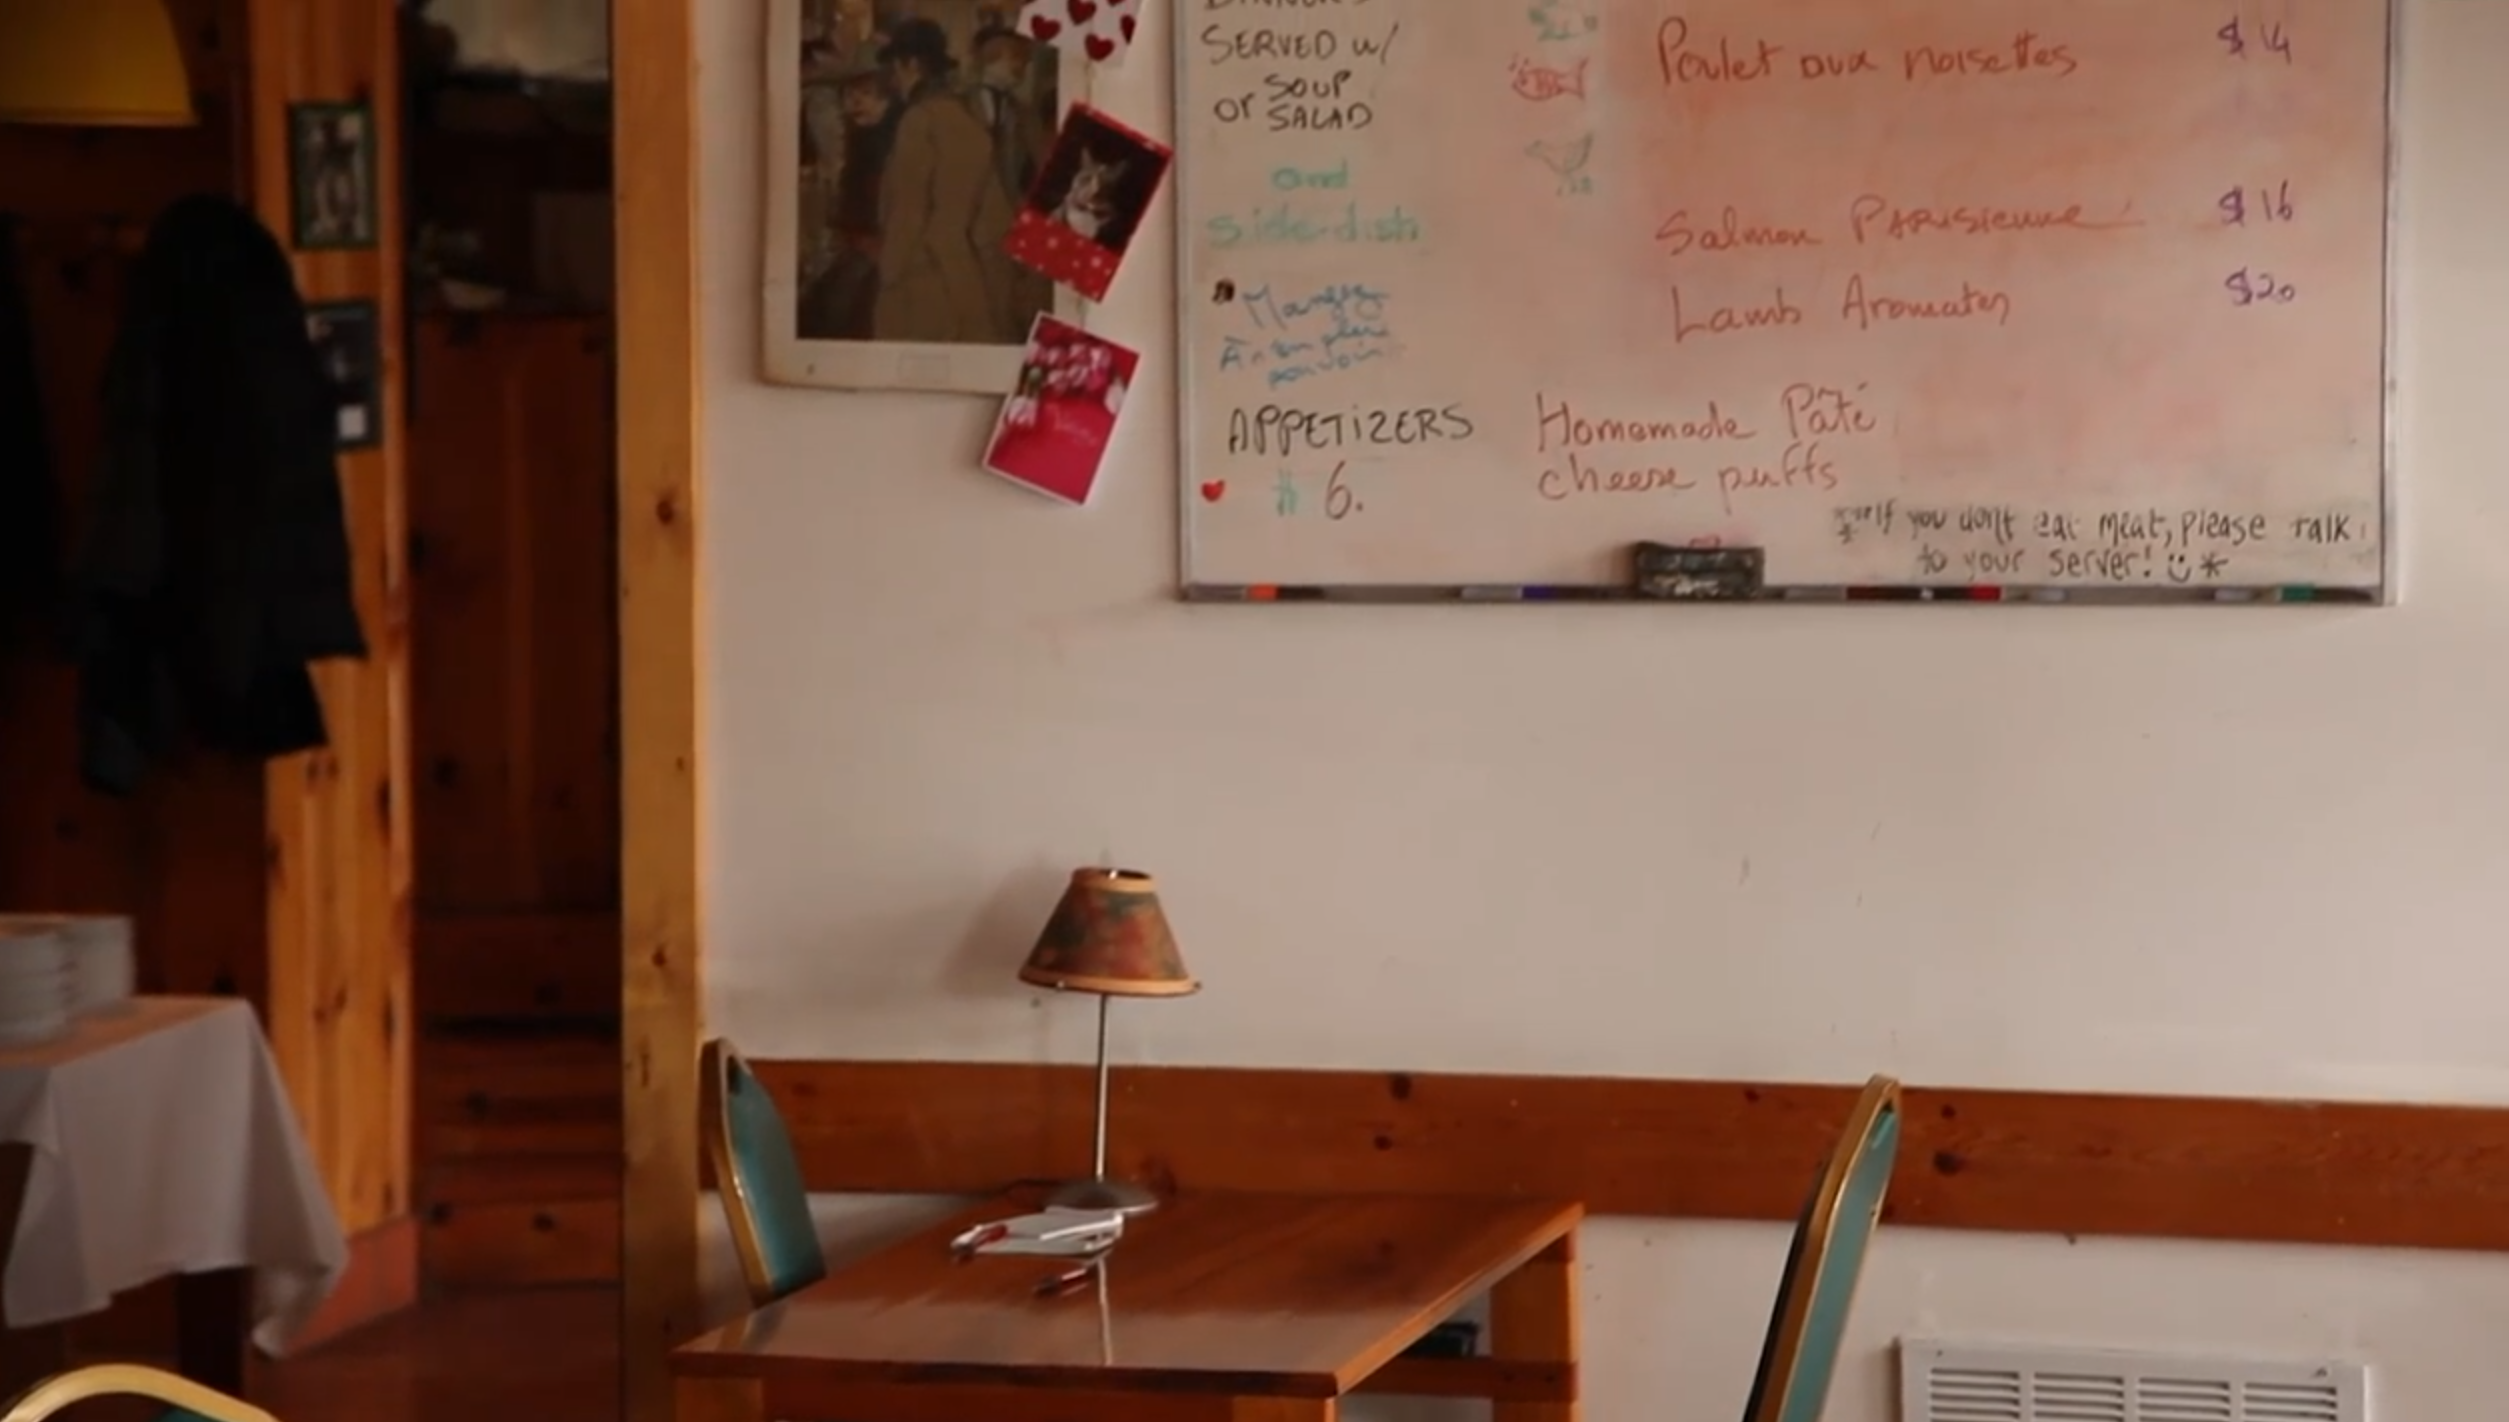 A small, unpretentious restaurant table with the menu behind on a whiteboard.